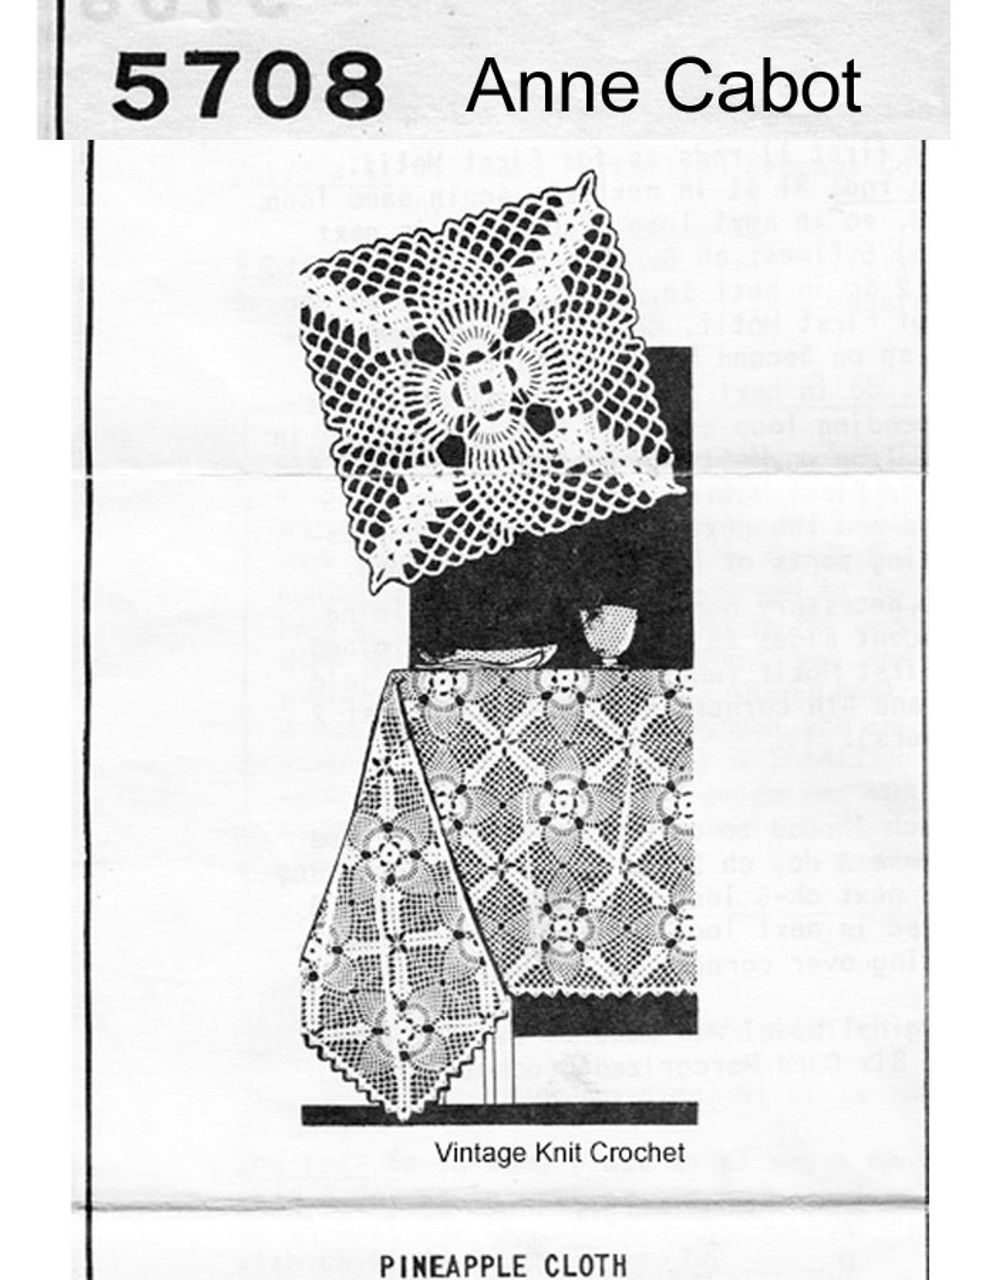 Vintage Crochet Pineapple Tablecloth Pattern, Anne Cabot 5708